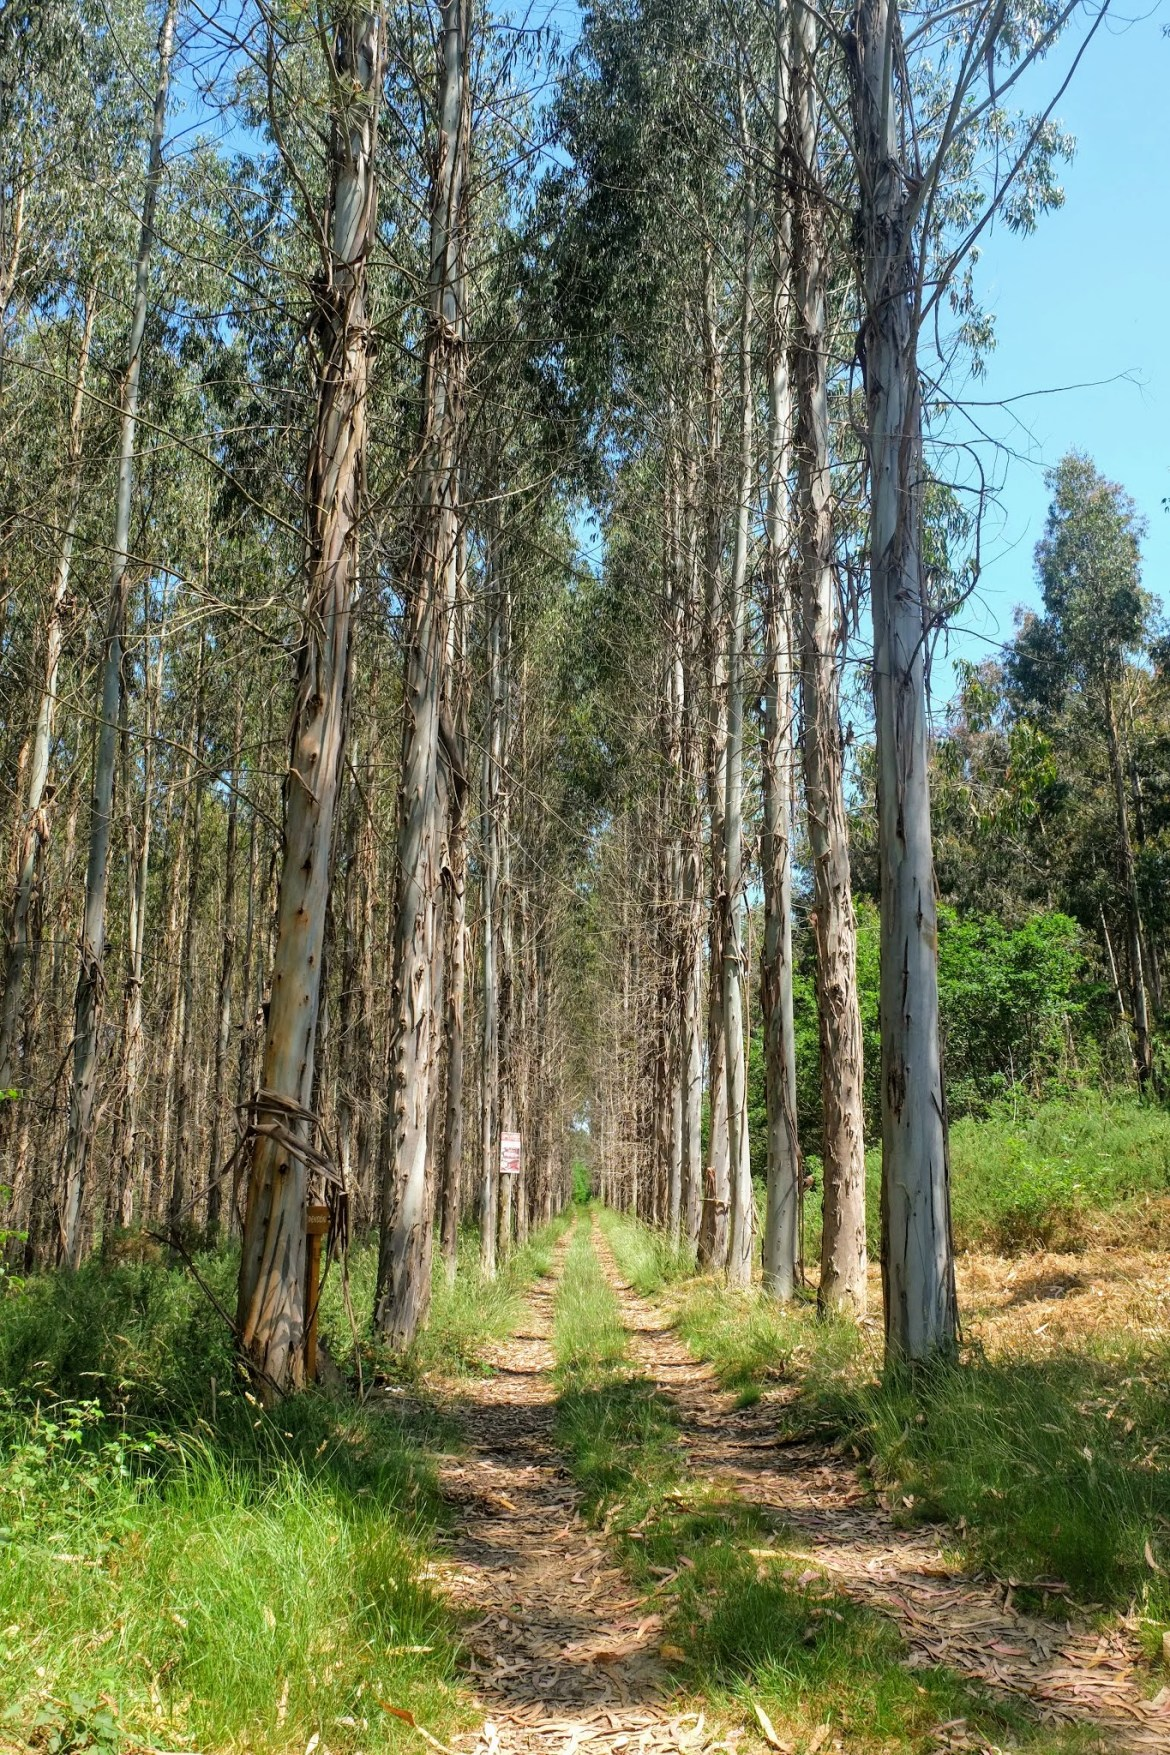 Eucalyptus Trees along the Camino in Spain, lost my smell from covid